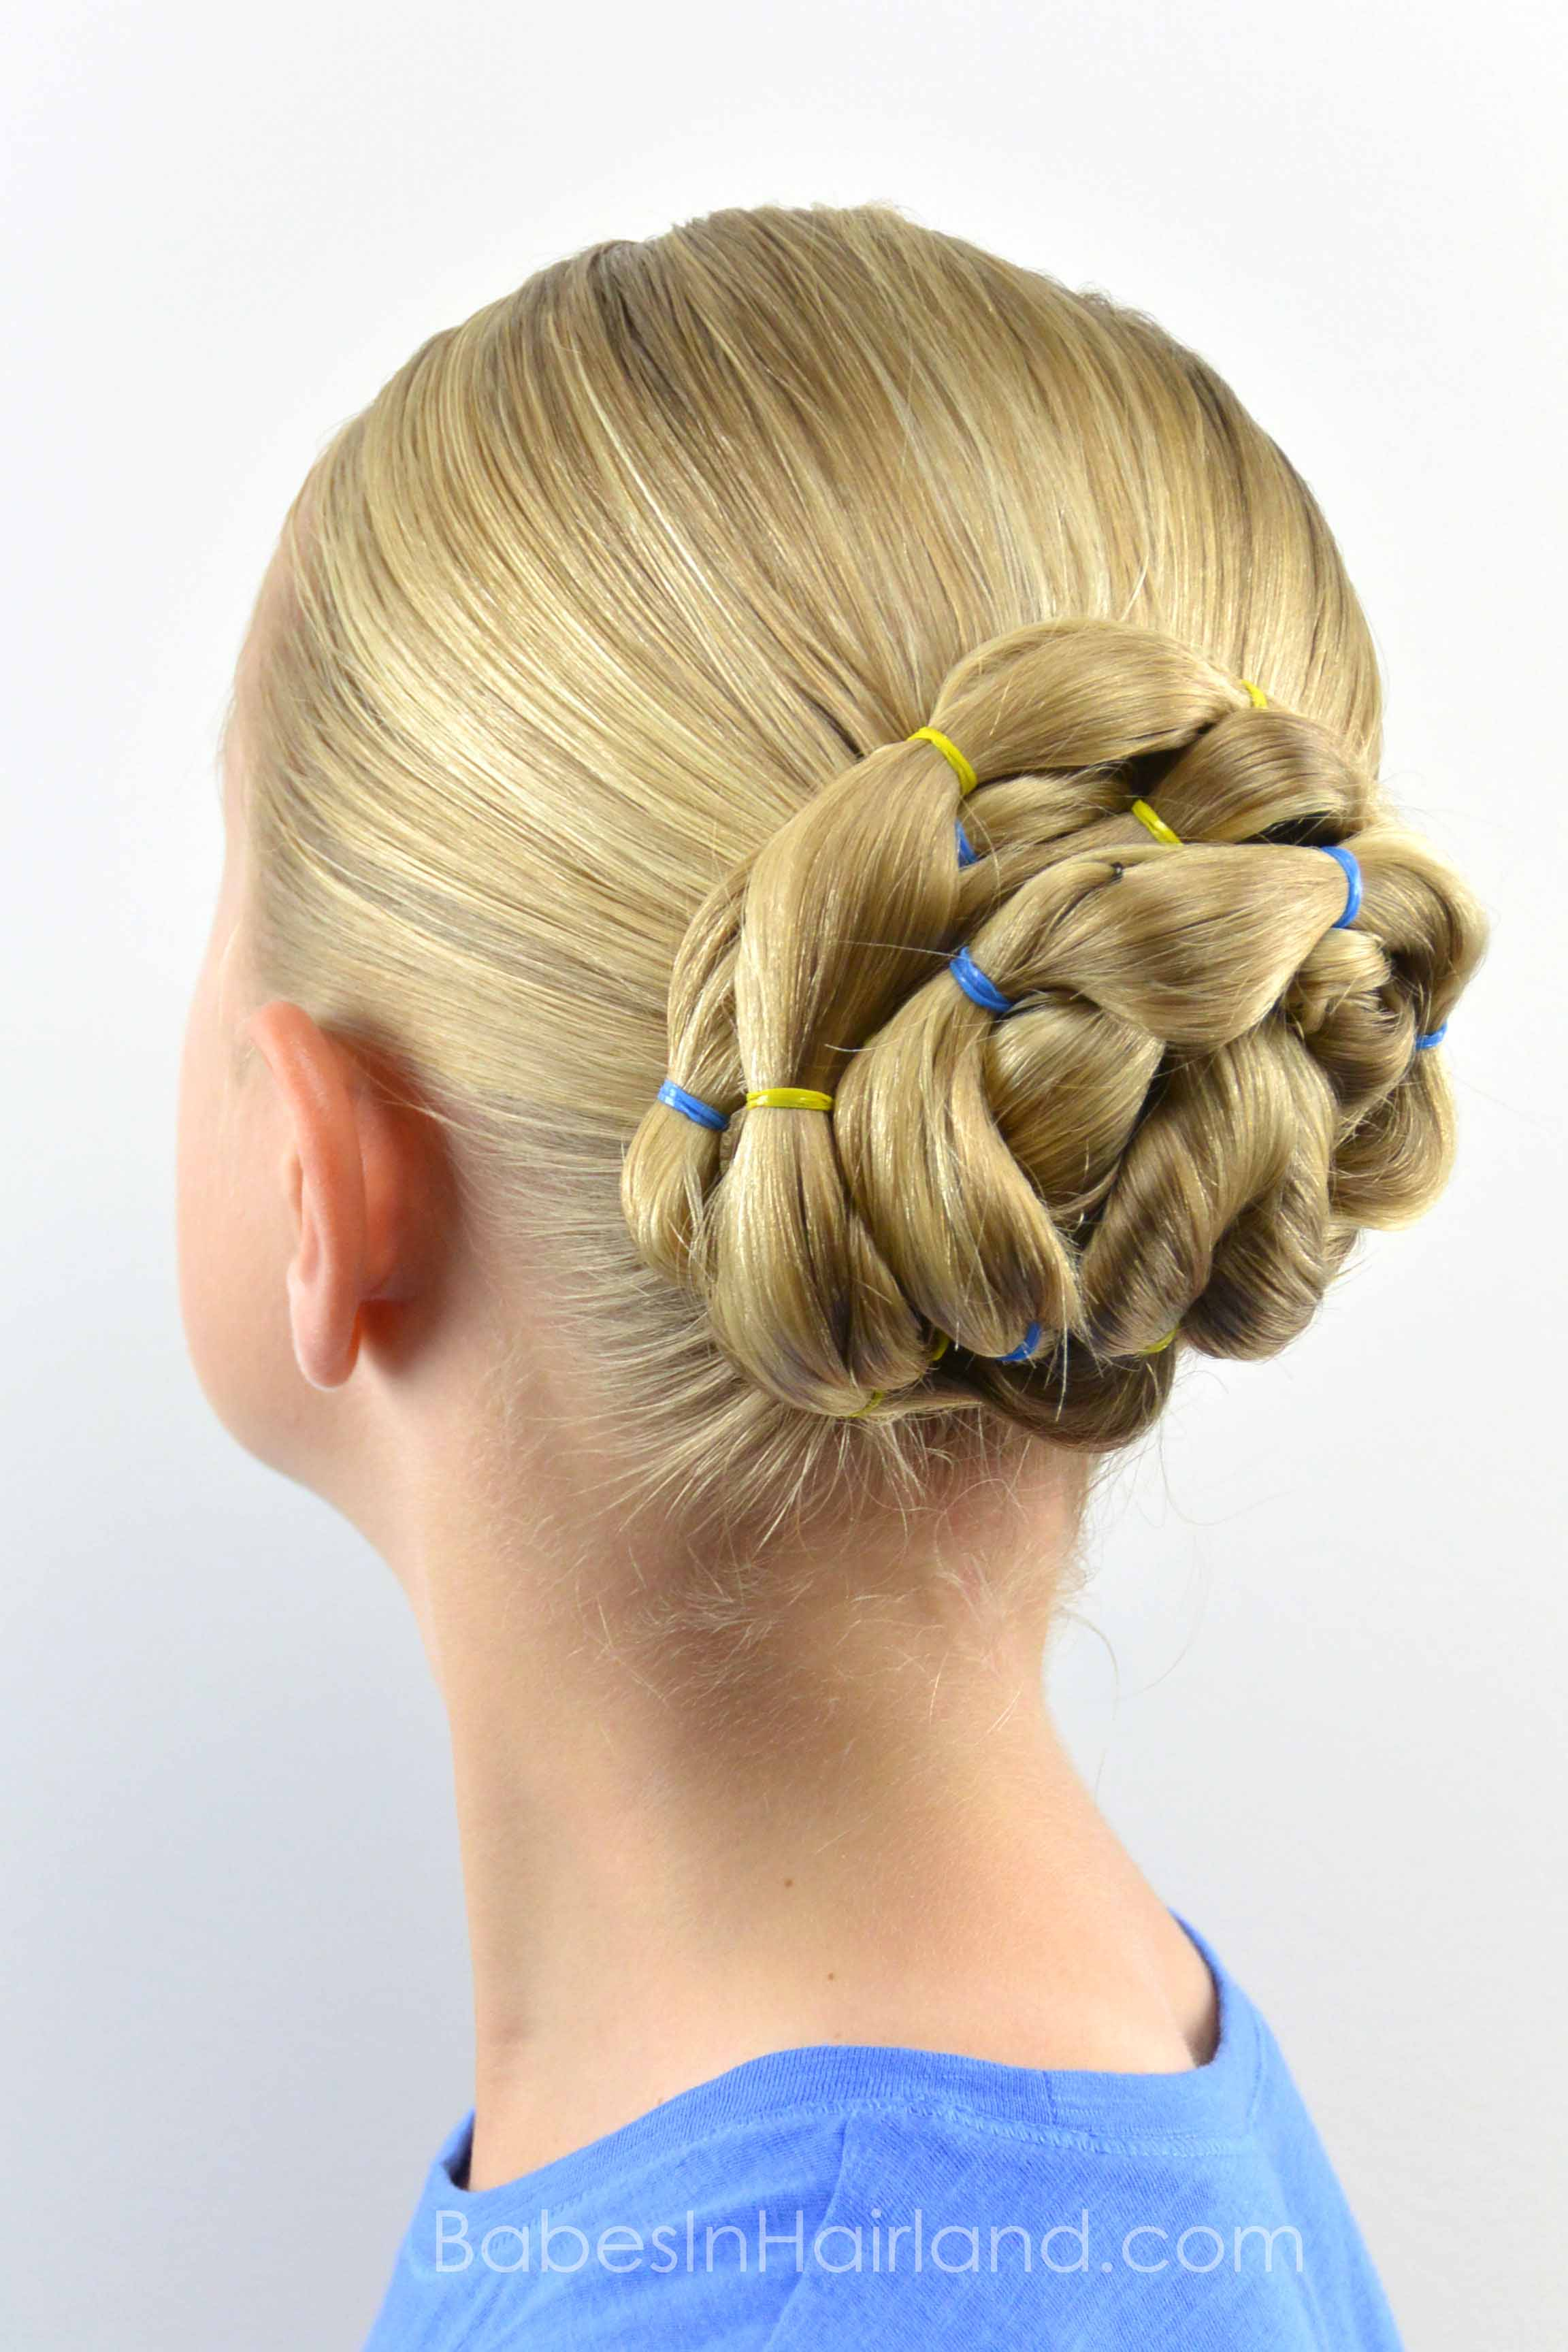 hair style in small hair 25 hairstyles you can do yourself 8408